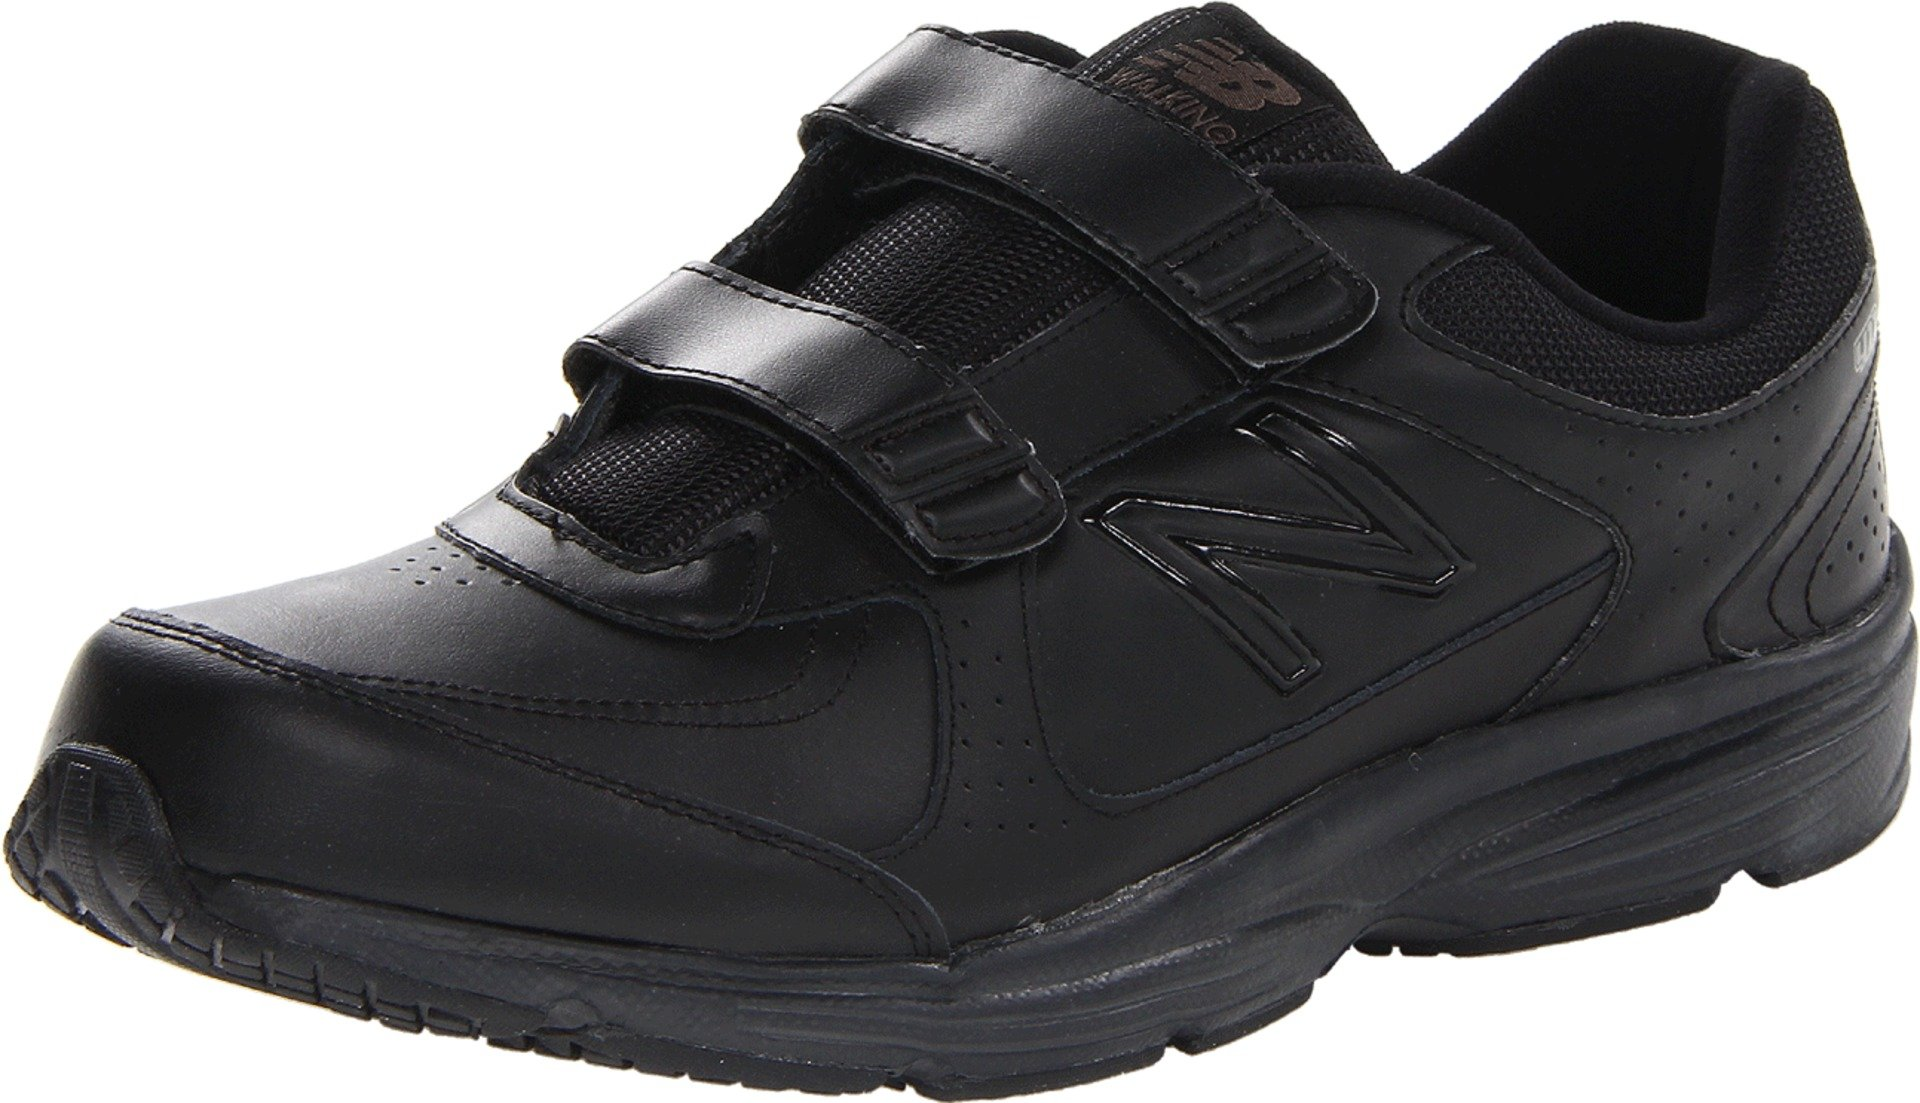 New Balance Men's MW411 Hook and Loop Walking Shoe